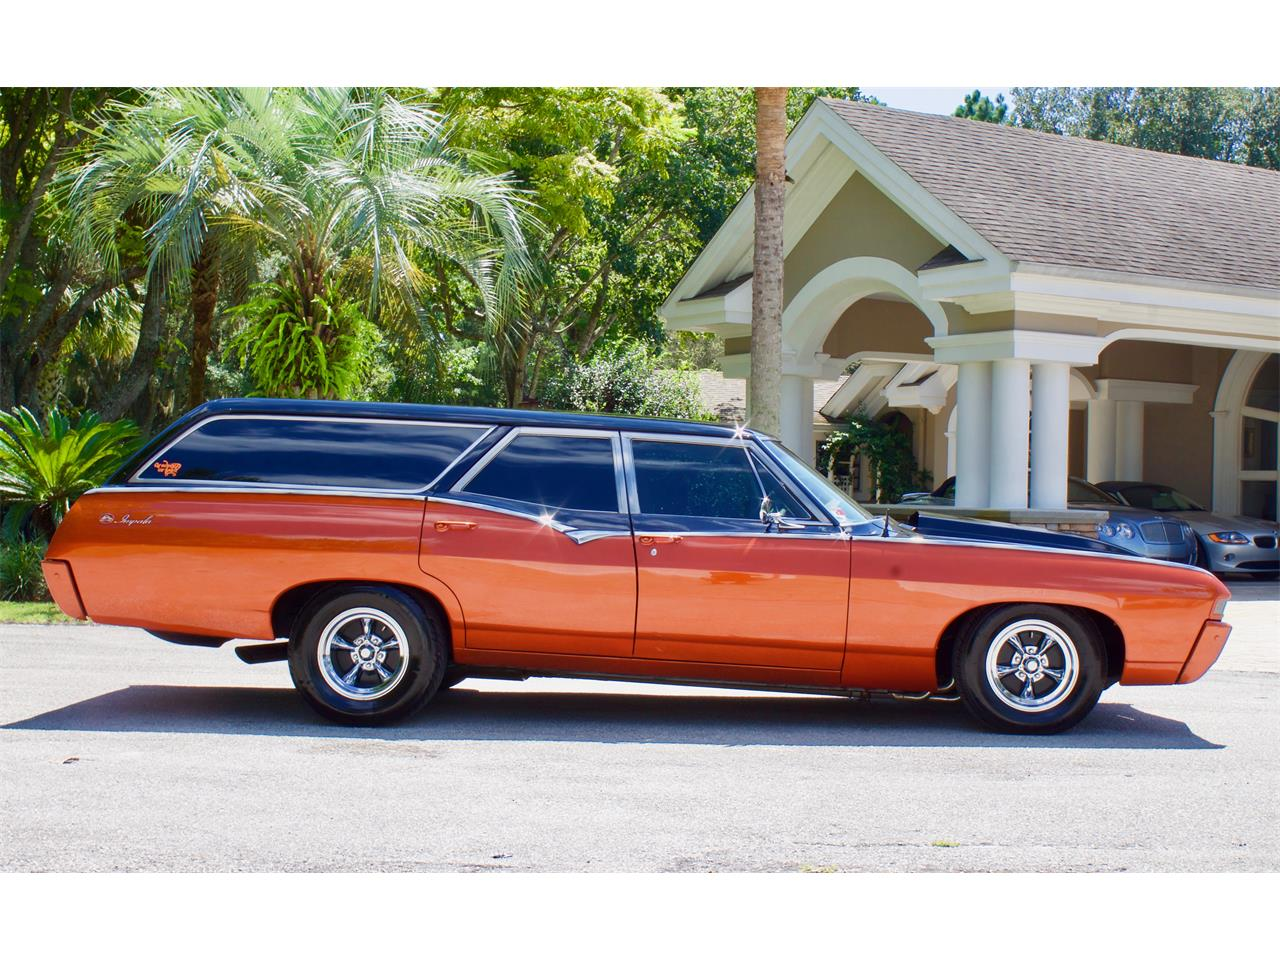 Large Picture of Classic 1968 Chevrolet Impala SS427 located in Florida - QYQC